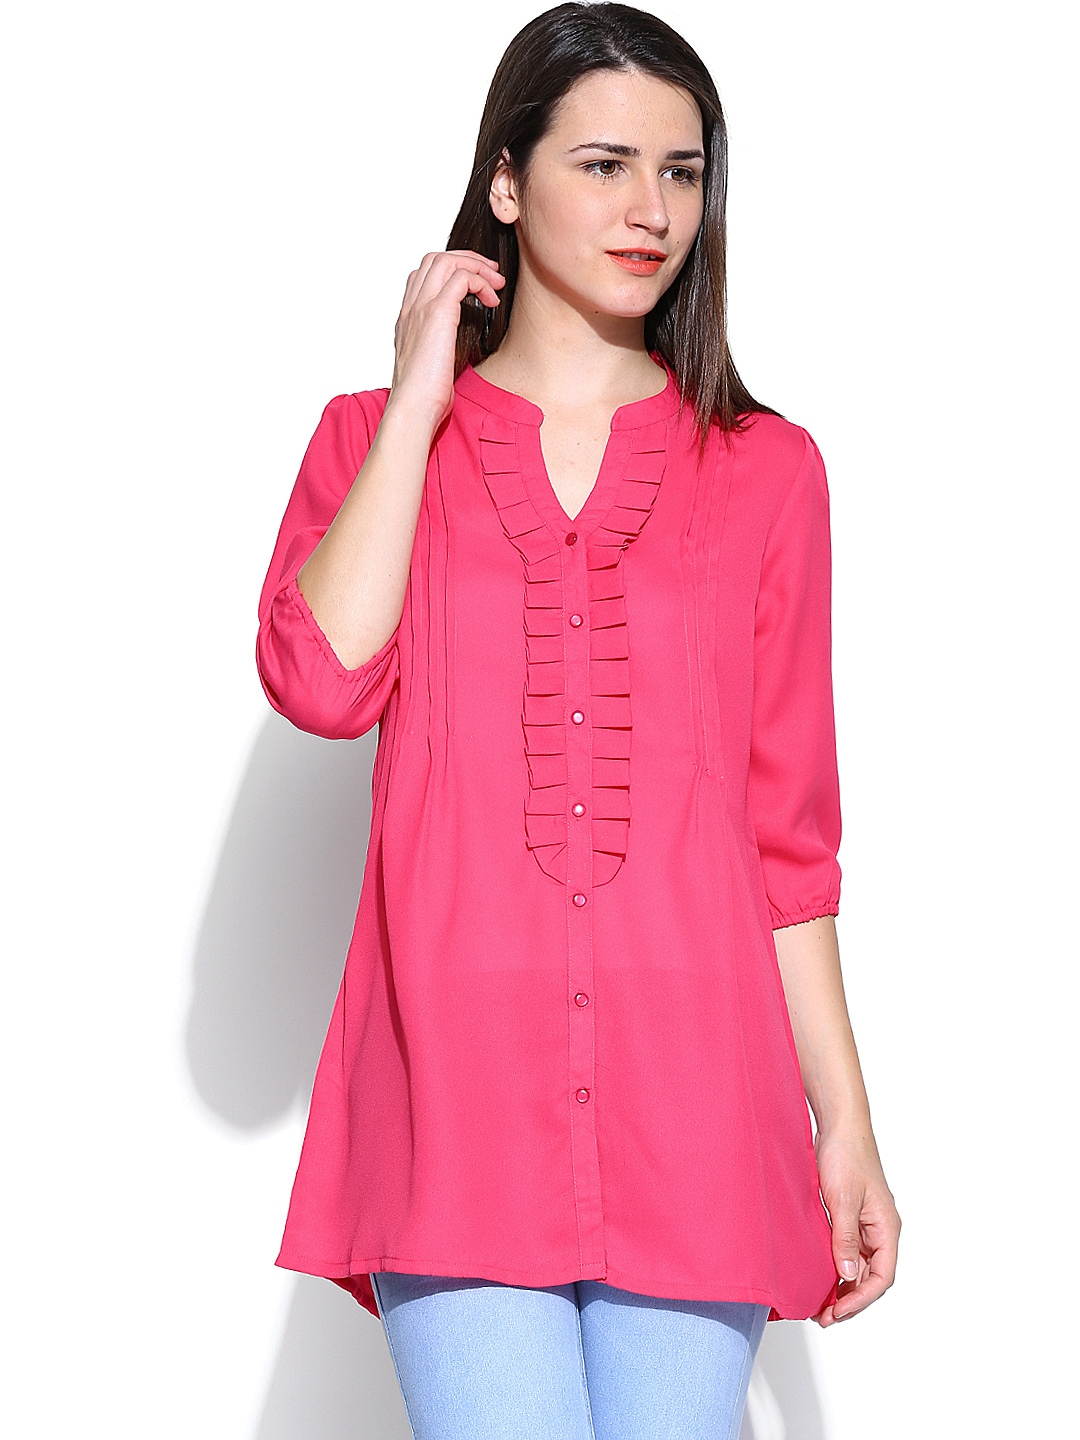 Shop women's tops at truexfilepv.cf Discover a stylish selection of the latest brand name and designer fashions all at a great value.